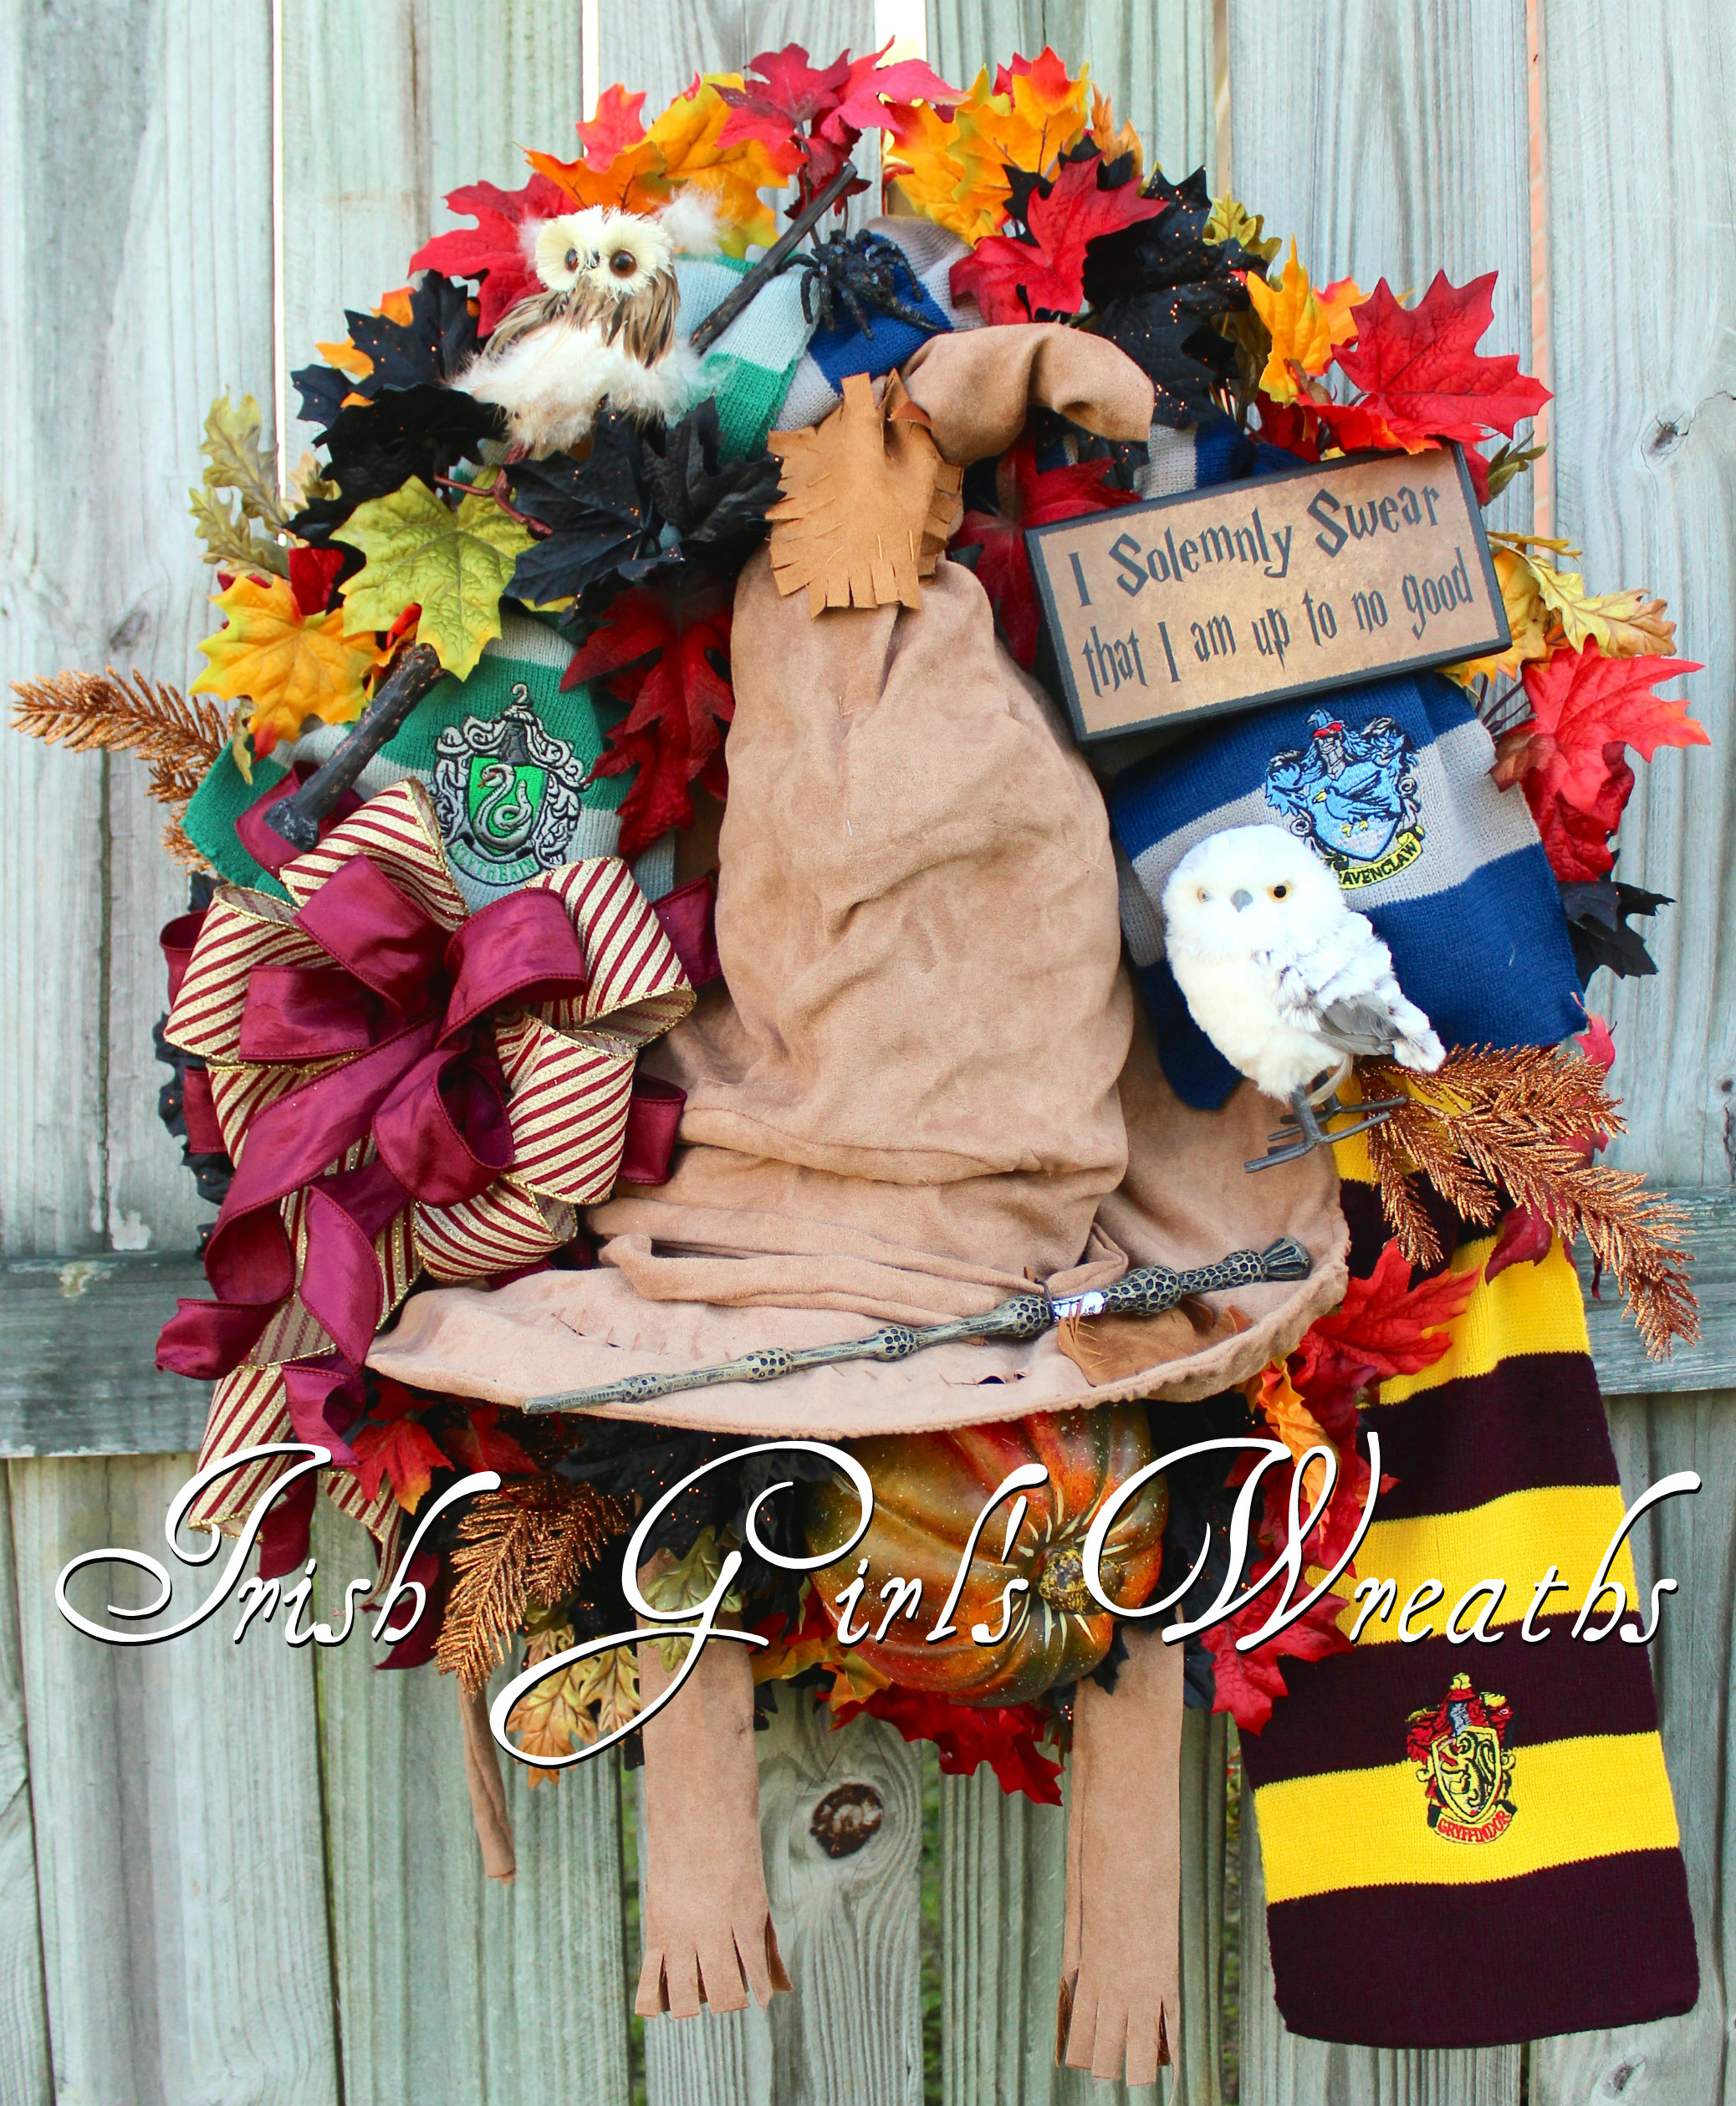 XL Hogwarts Harry Potter Sorting Hat Halloween Wreath, Gryffindor, Ravenclaw, Slytheryn, Owl, I Solemnly Swear I'm Up to No Good